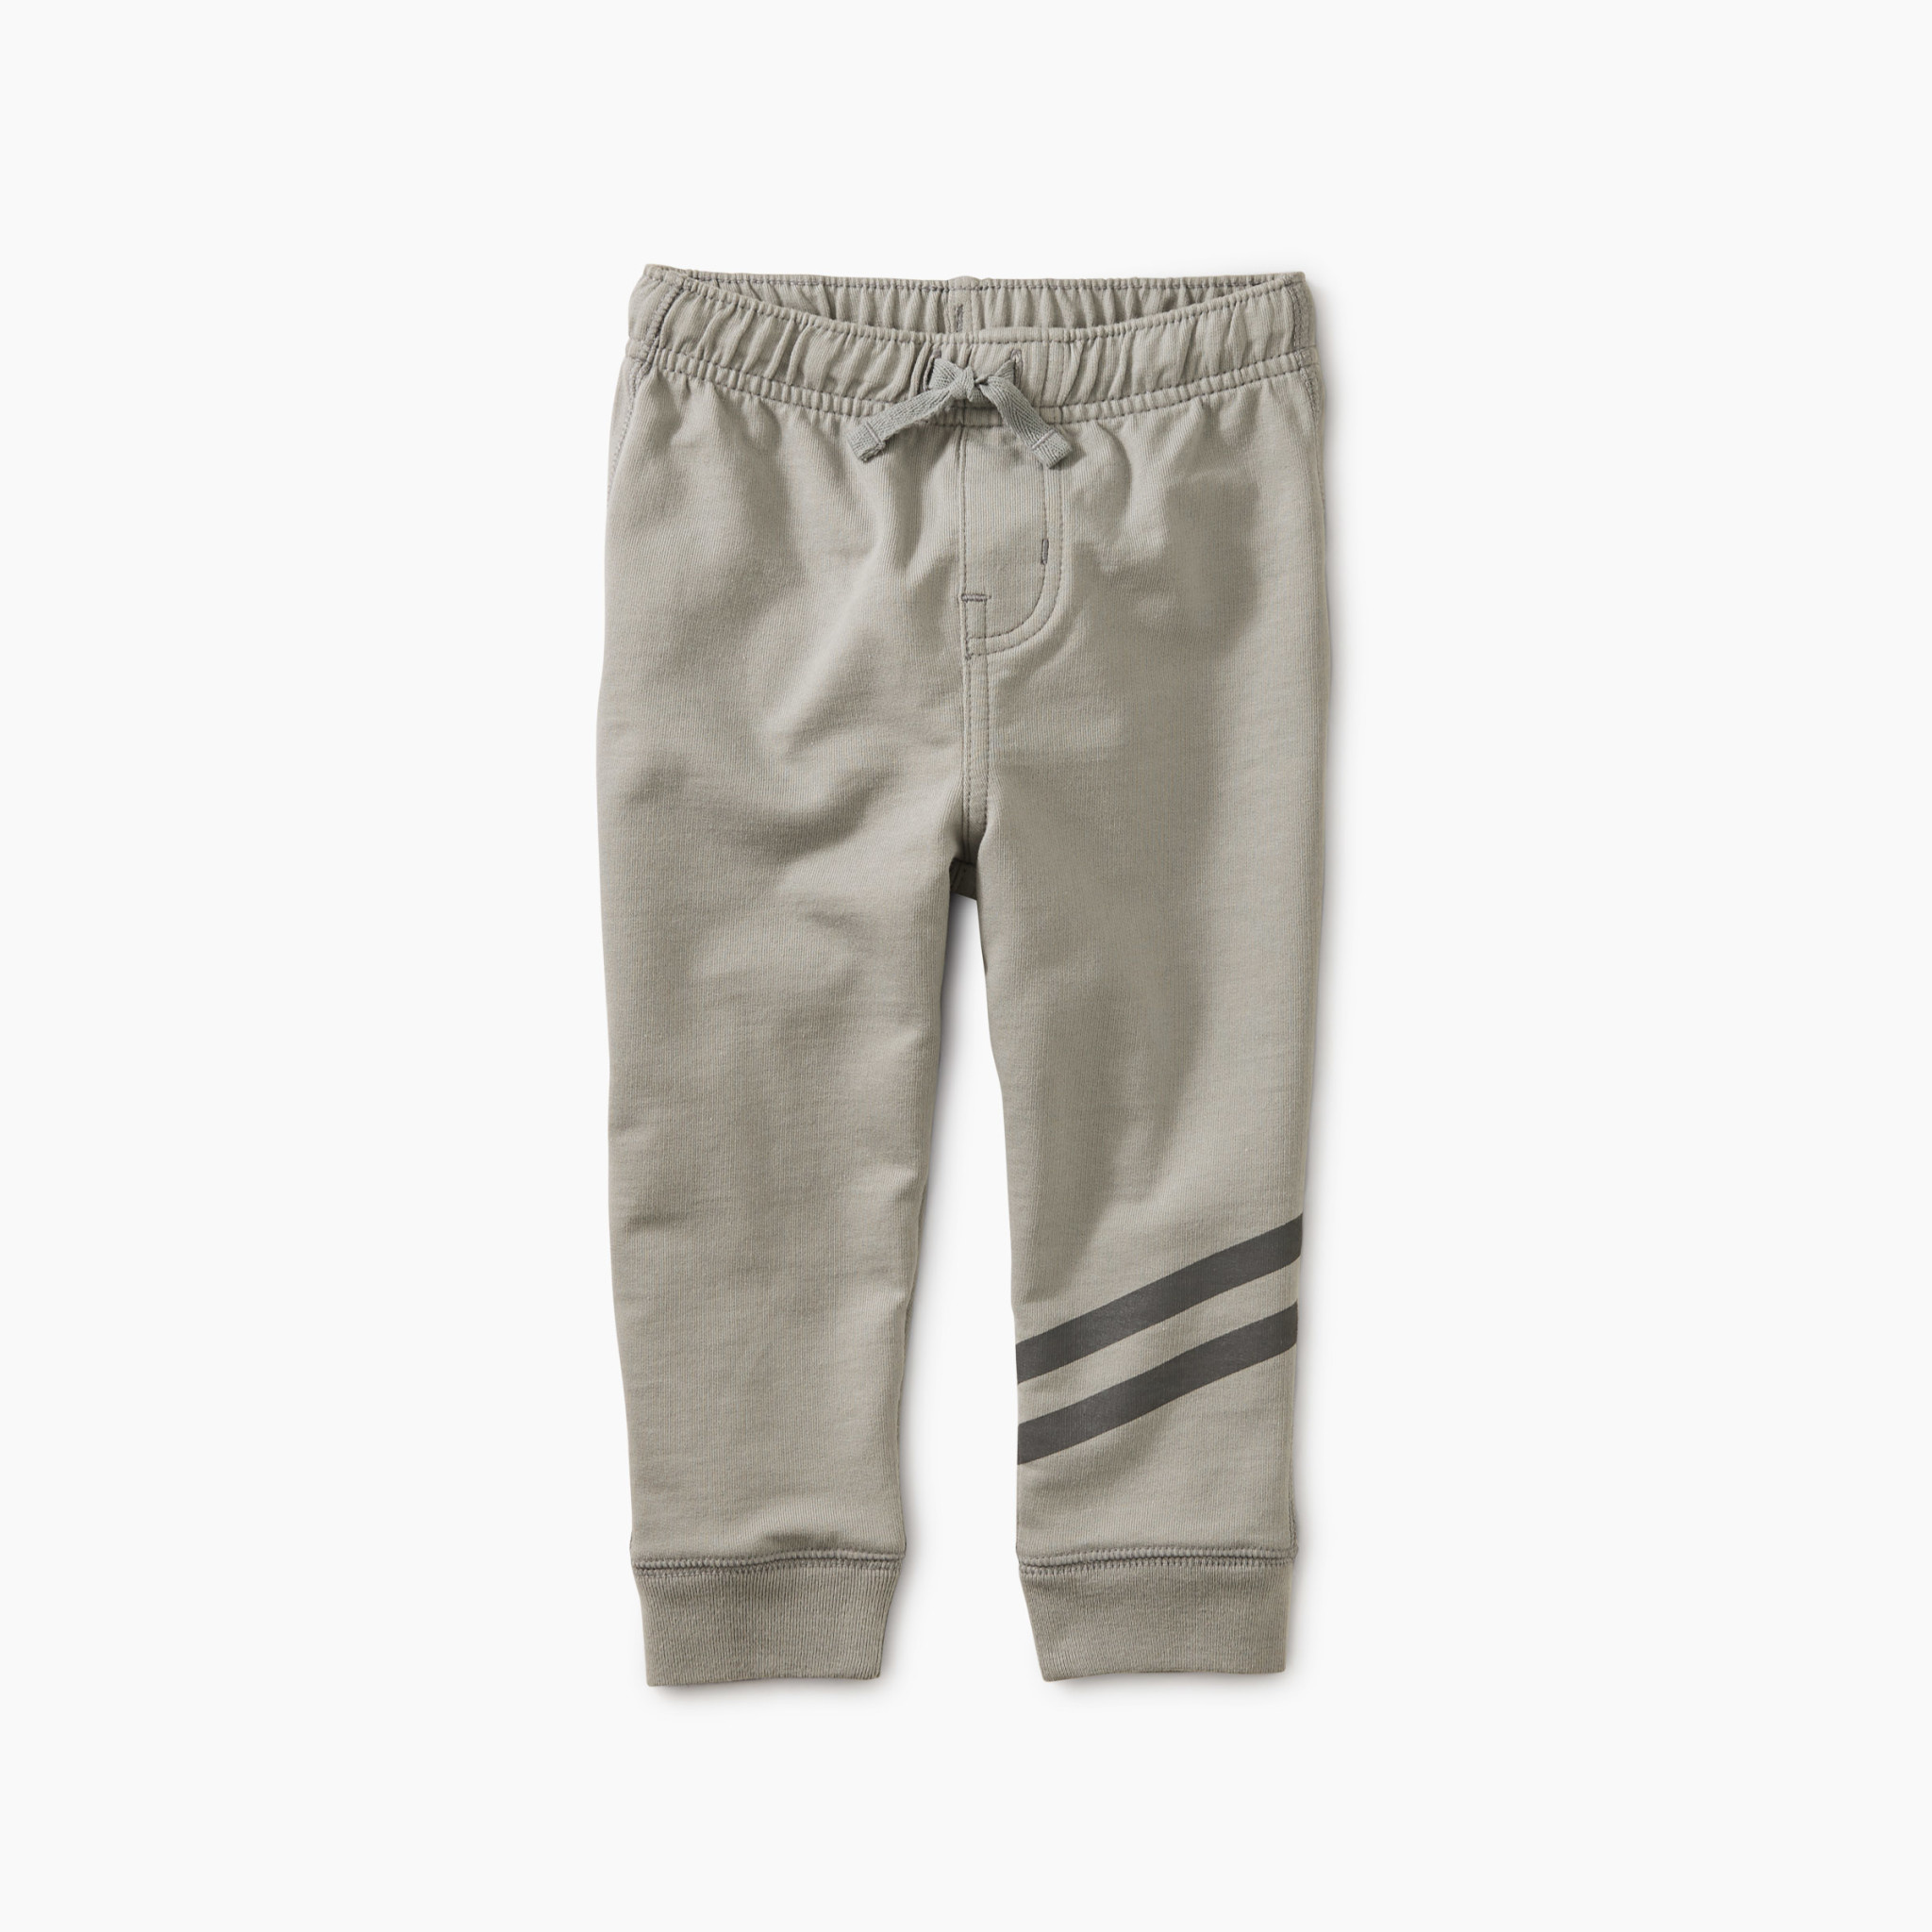 Tea Collection Speedy Stratus Striped Baby Joggers